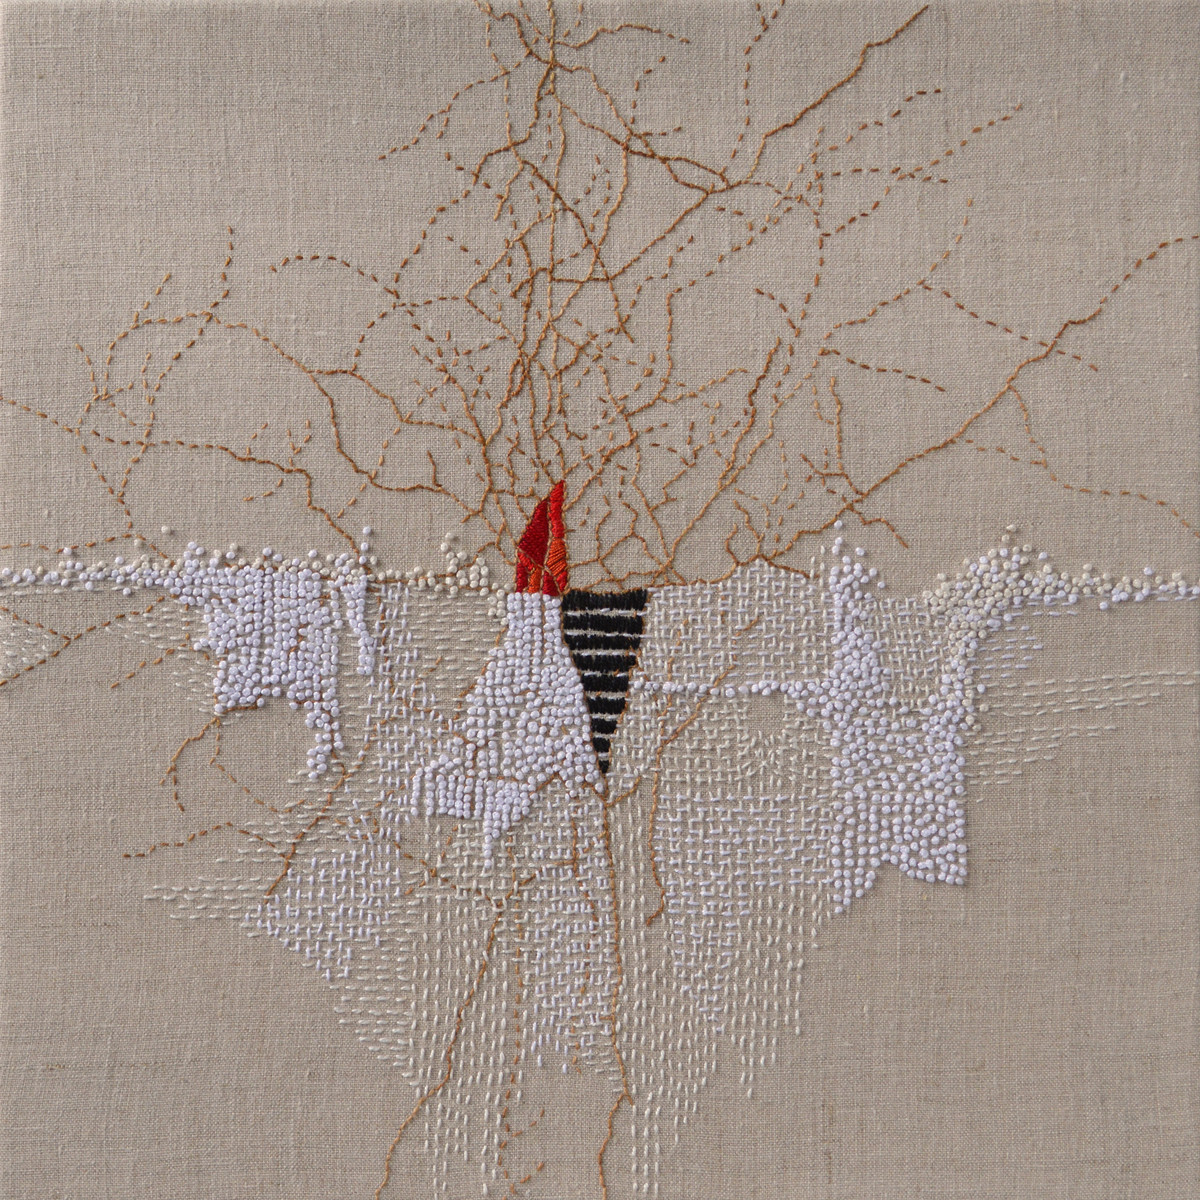 Bonnie Sennott,  Winter Flame , 2016, pearl cotton and linen, 14 x 14 inches